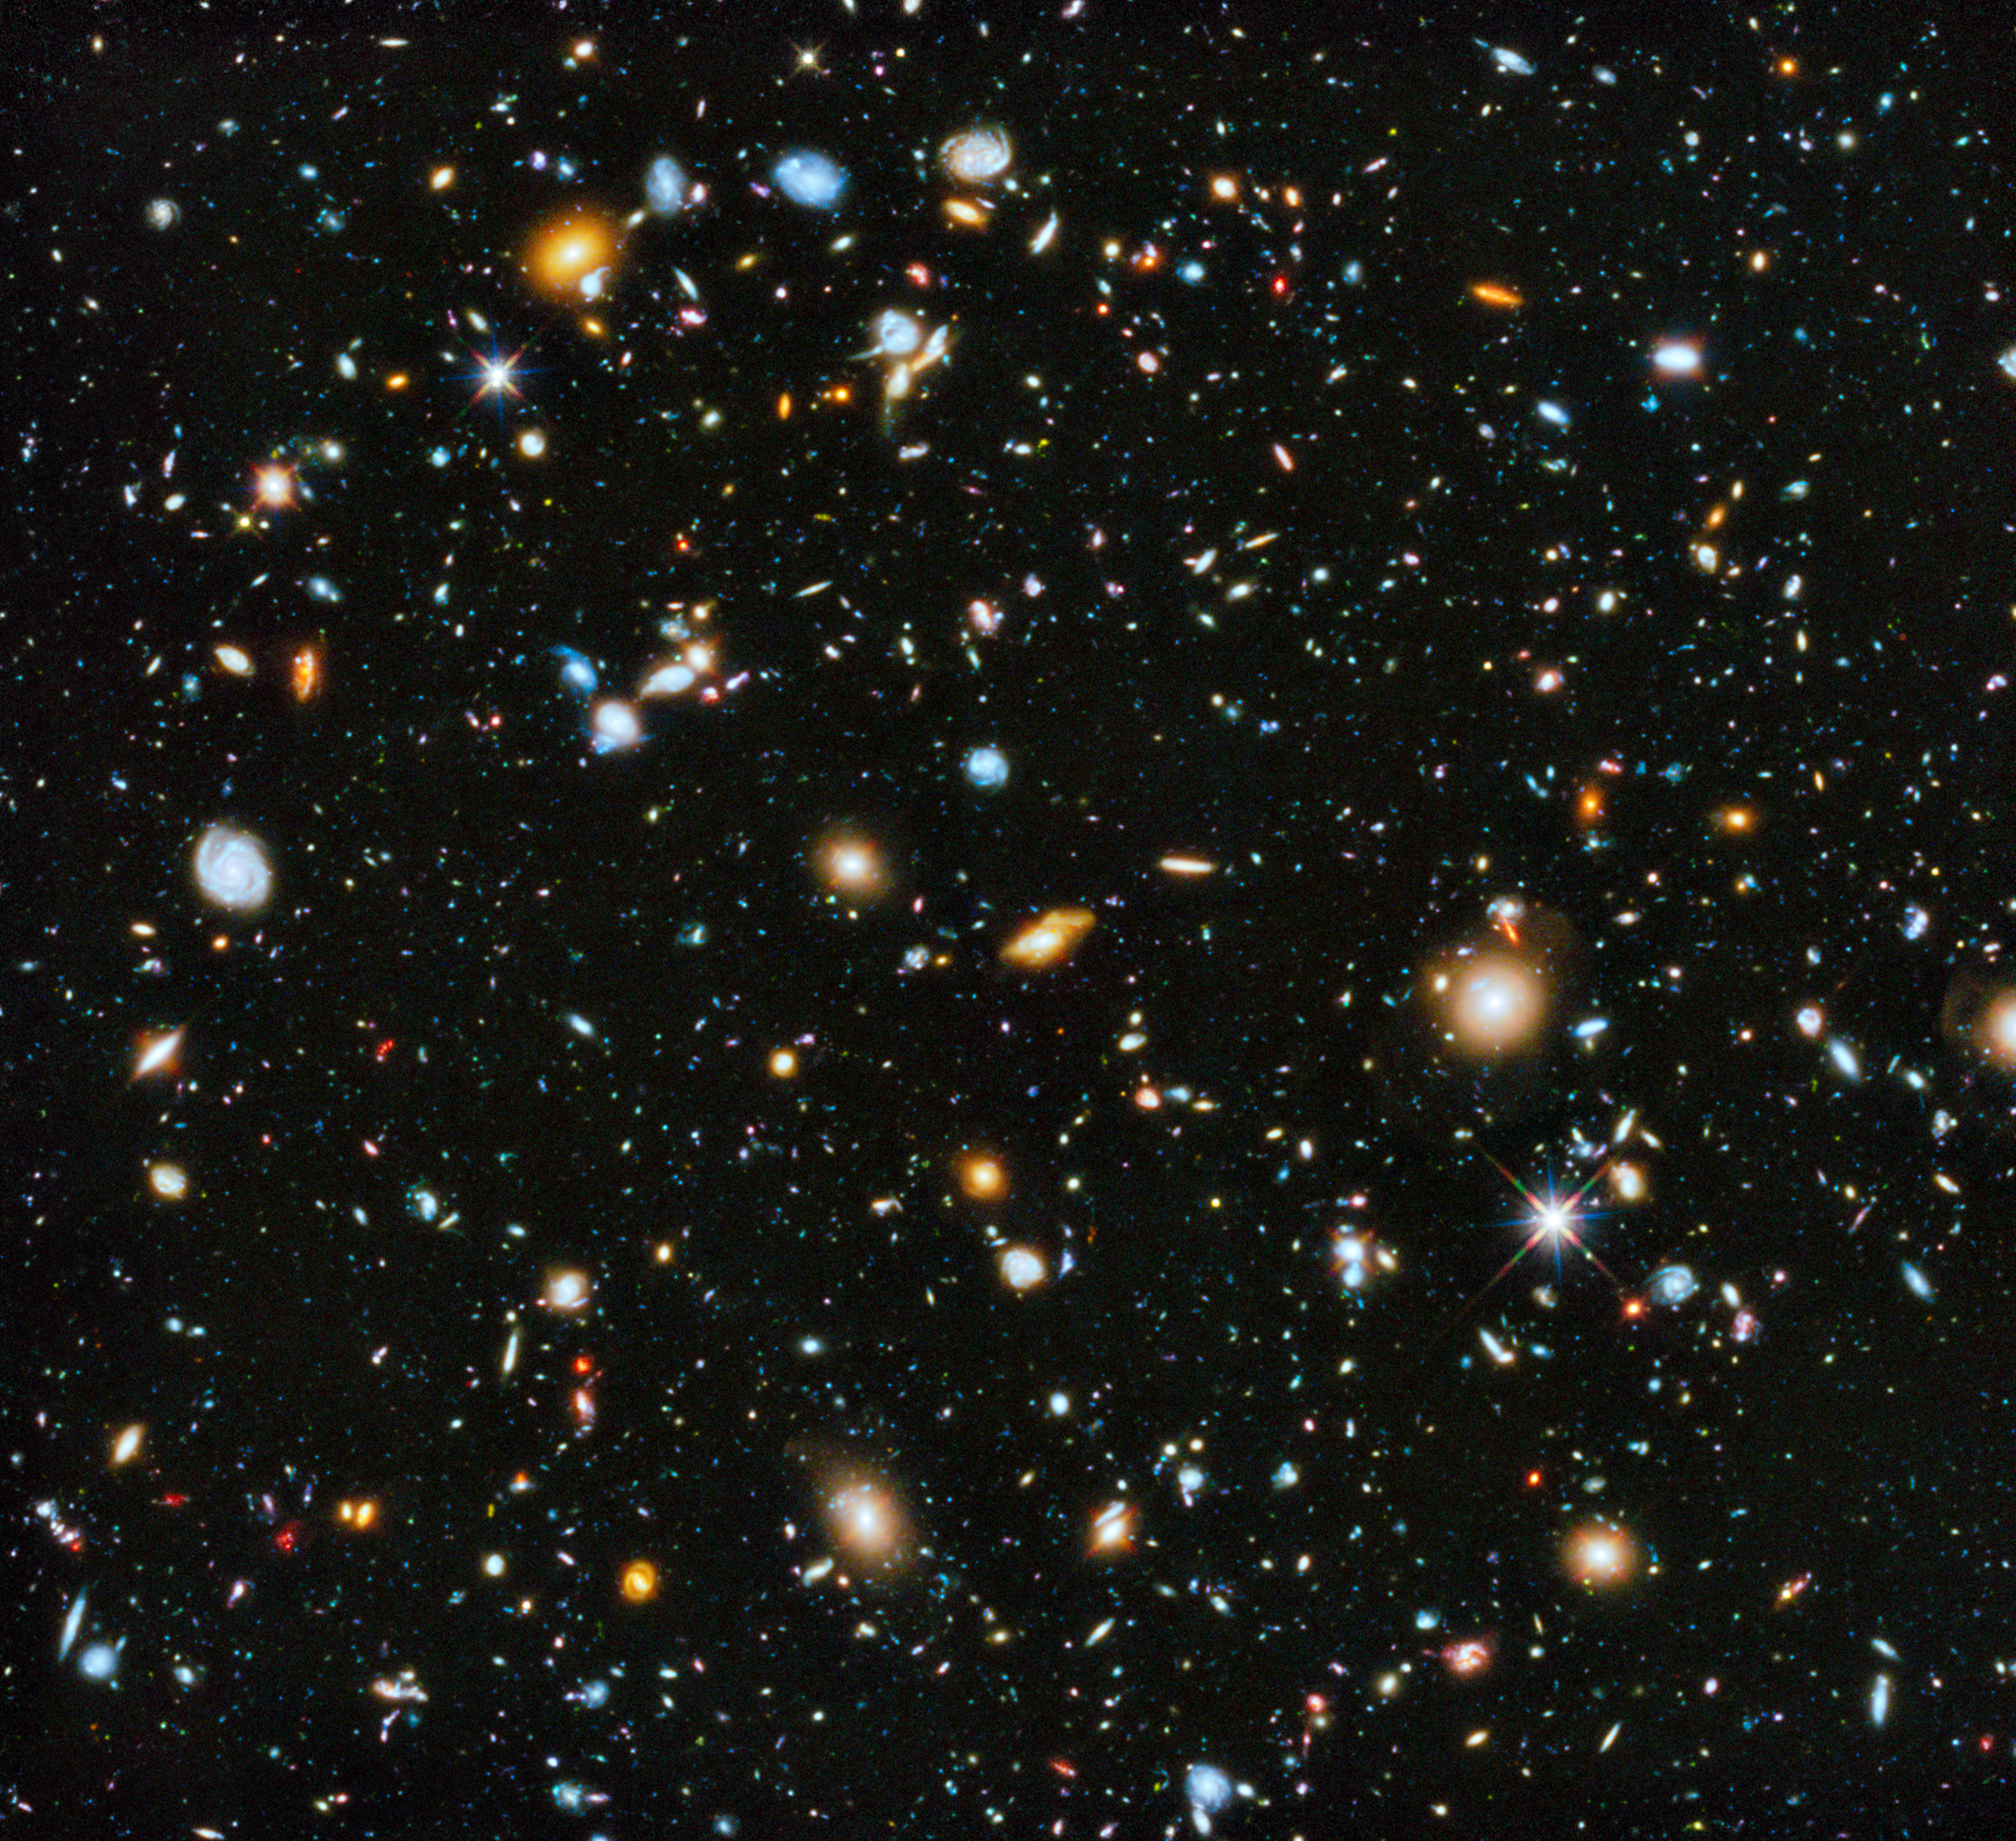 1 - The mysteries of the universe